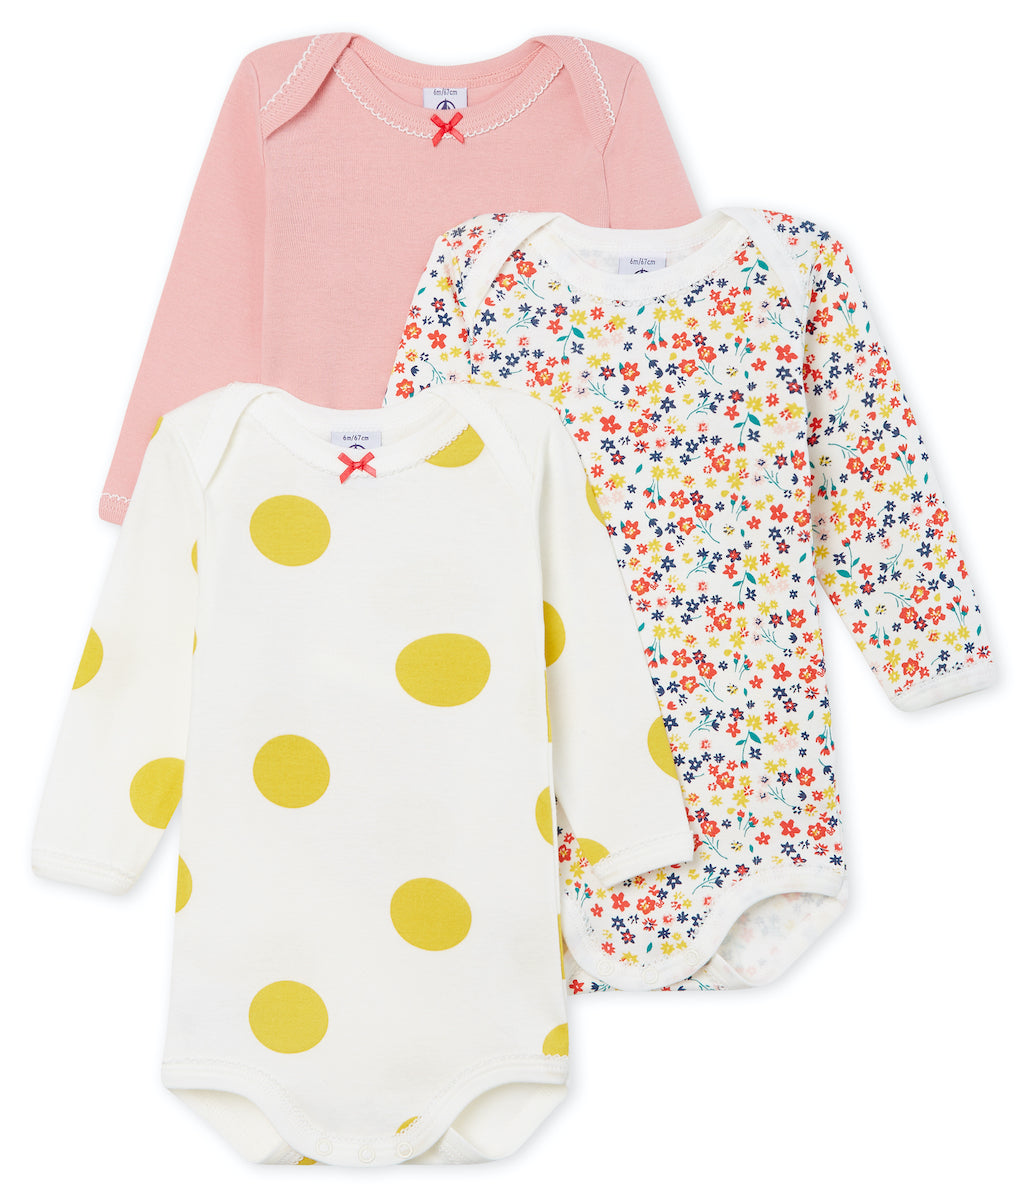 L/S Bodysuit 3pk | Yellow Spot/Floral/Peach